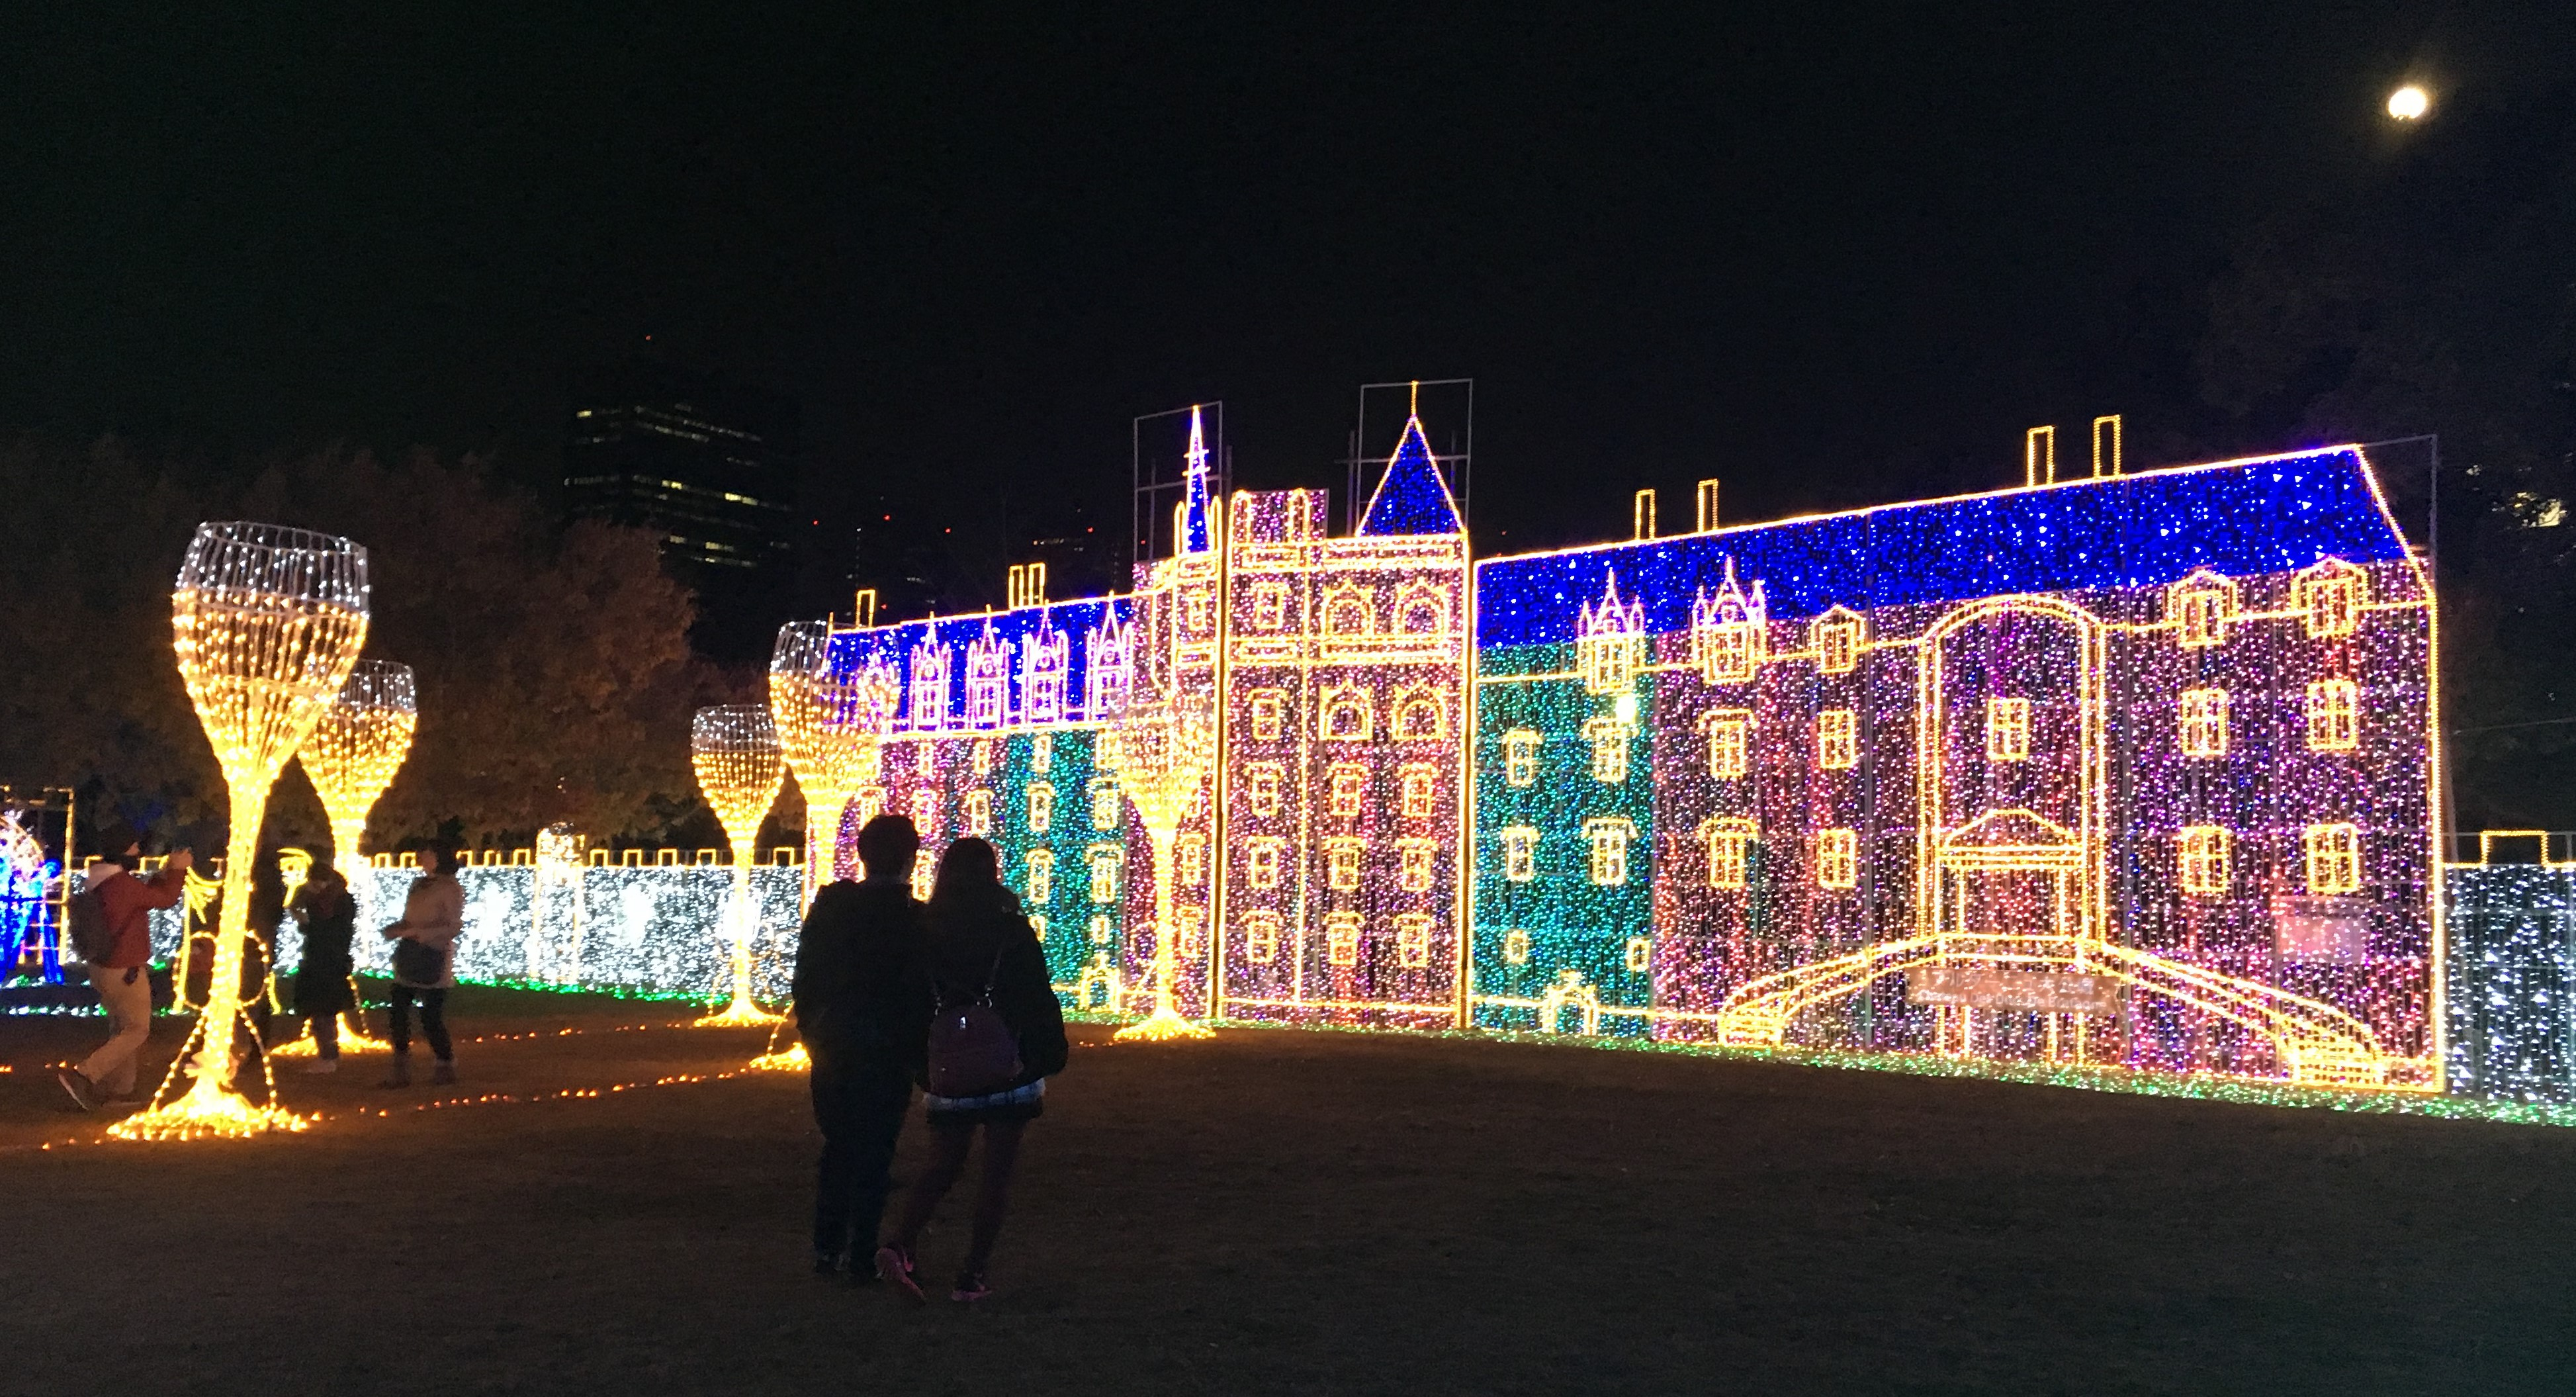 brightly colored illumination of a french castle at night